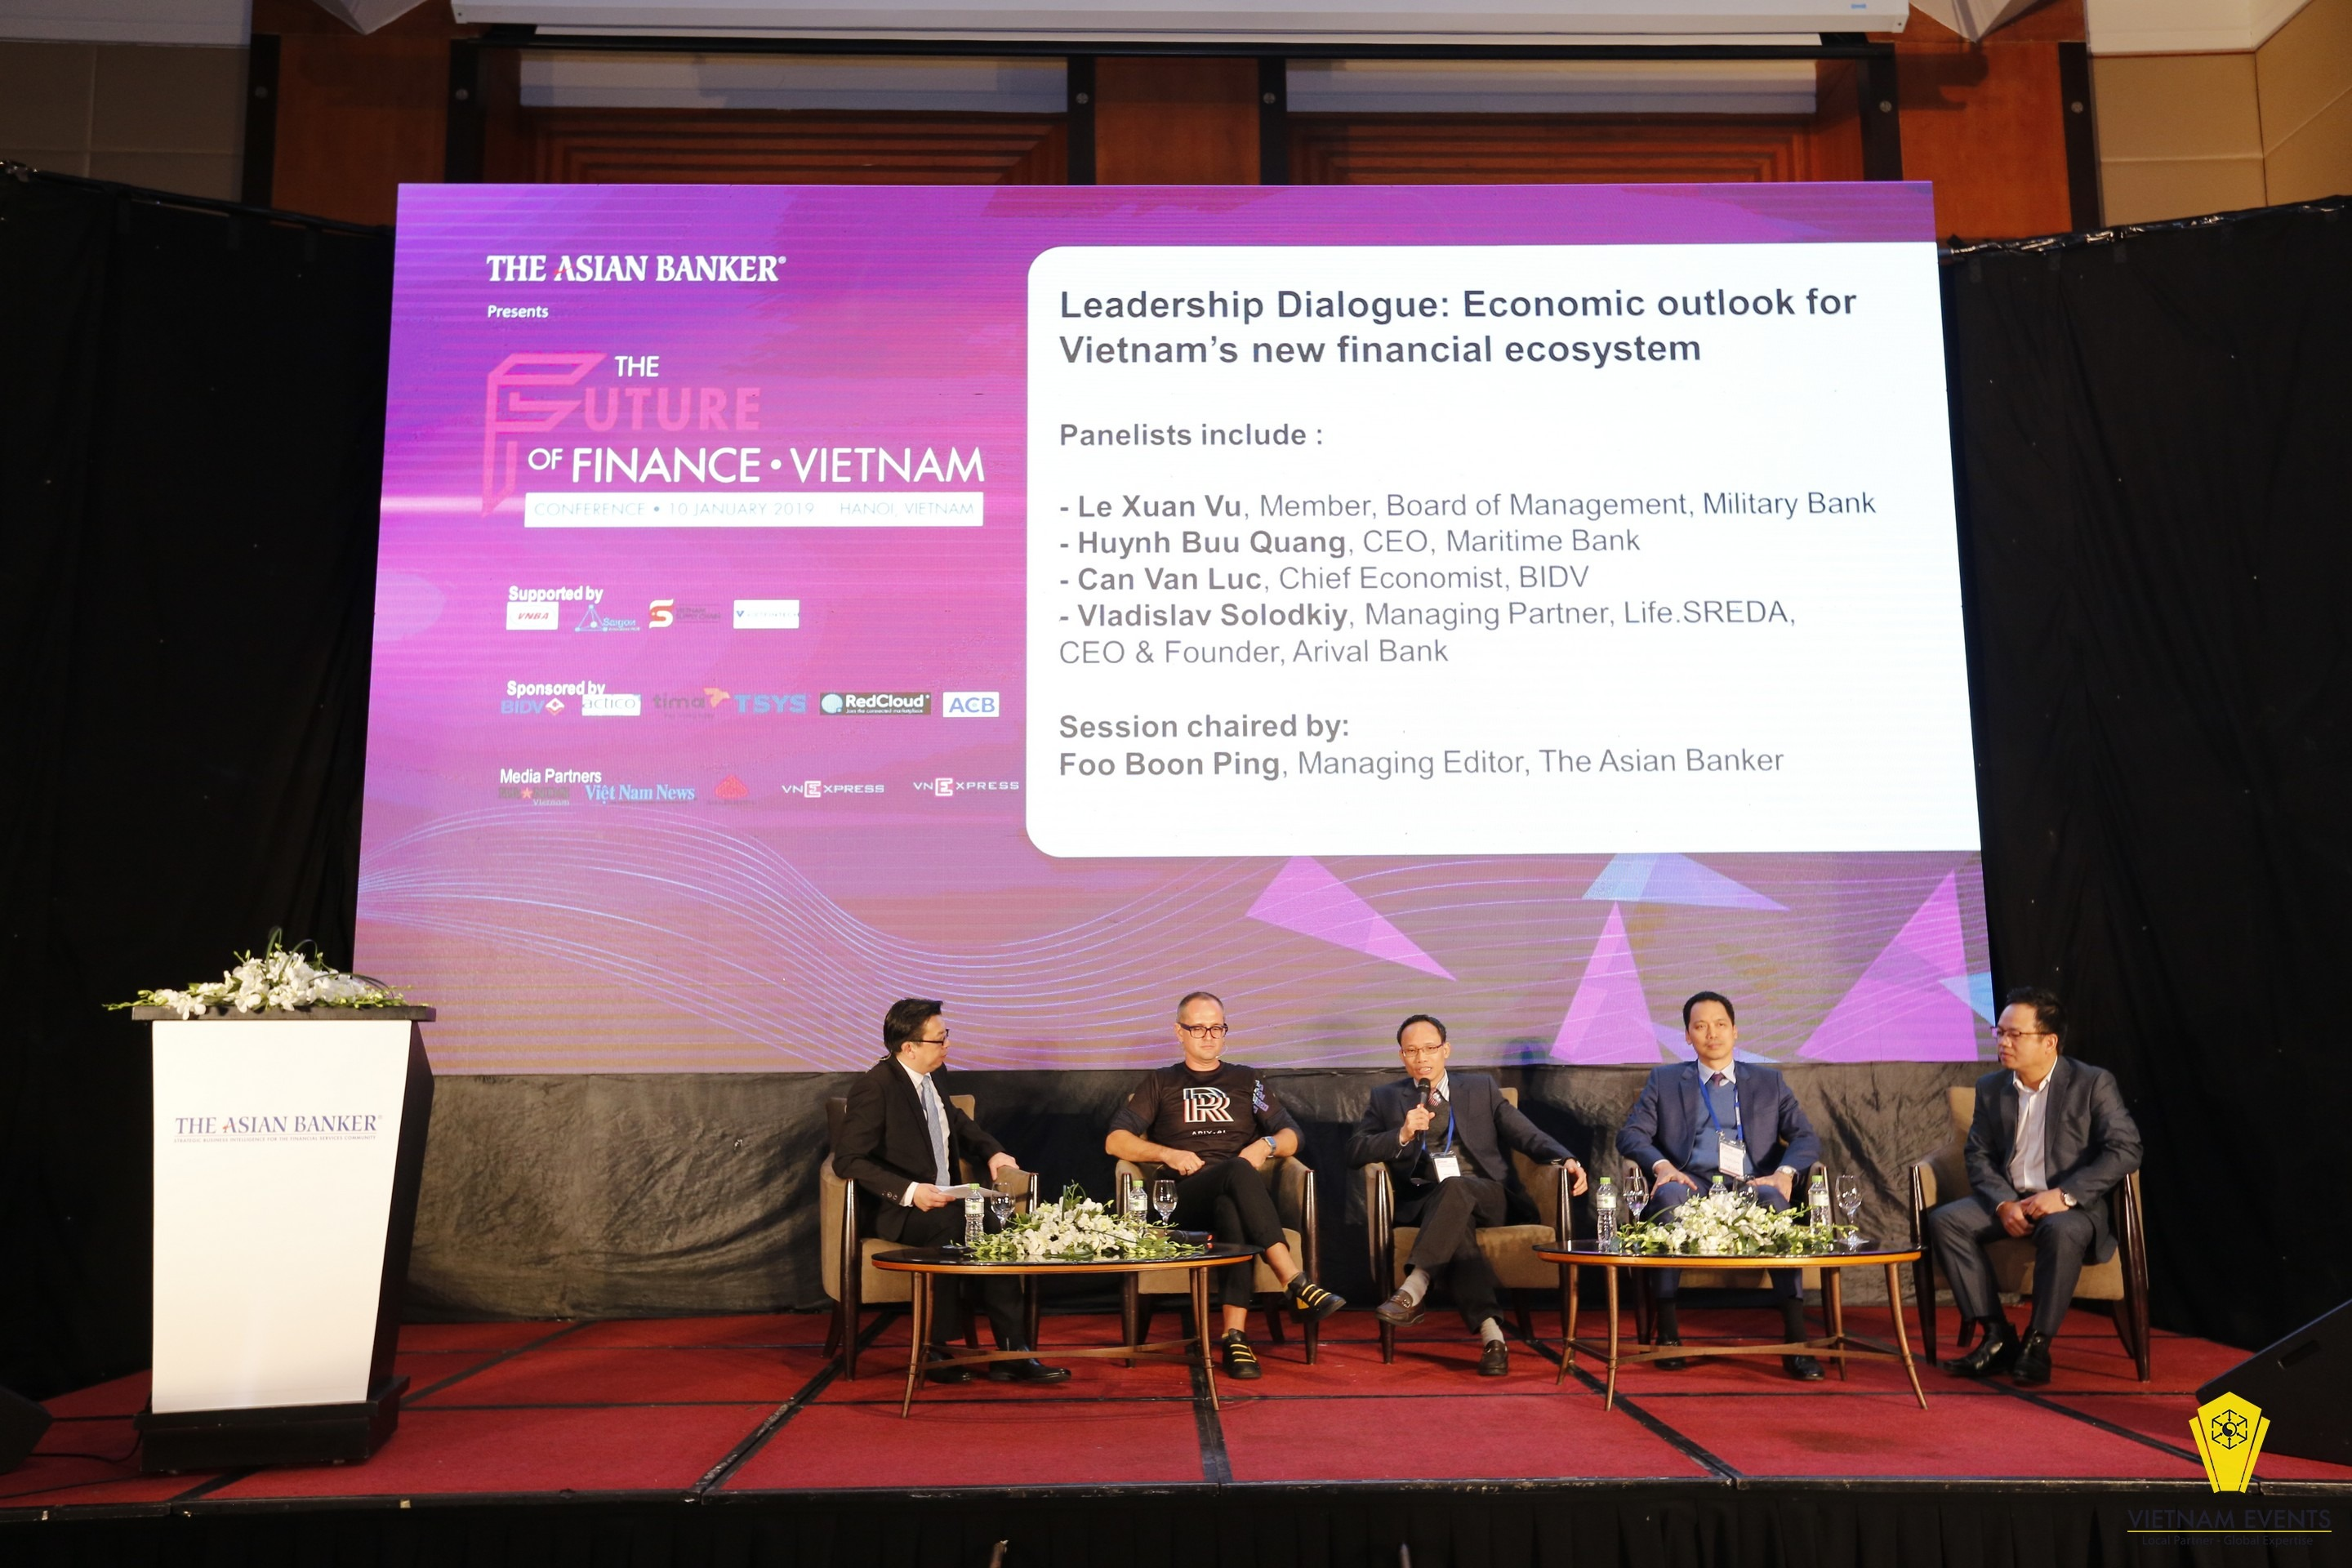 ASIAN BANKER CONFERENCE ORGANIZED IN HANOI